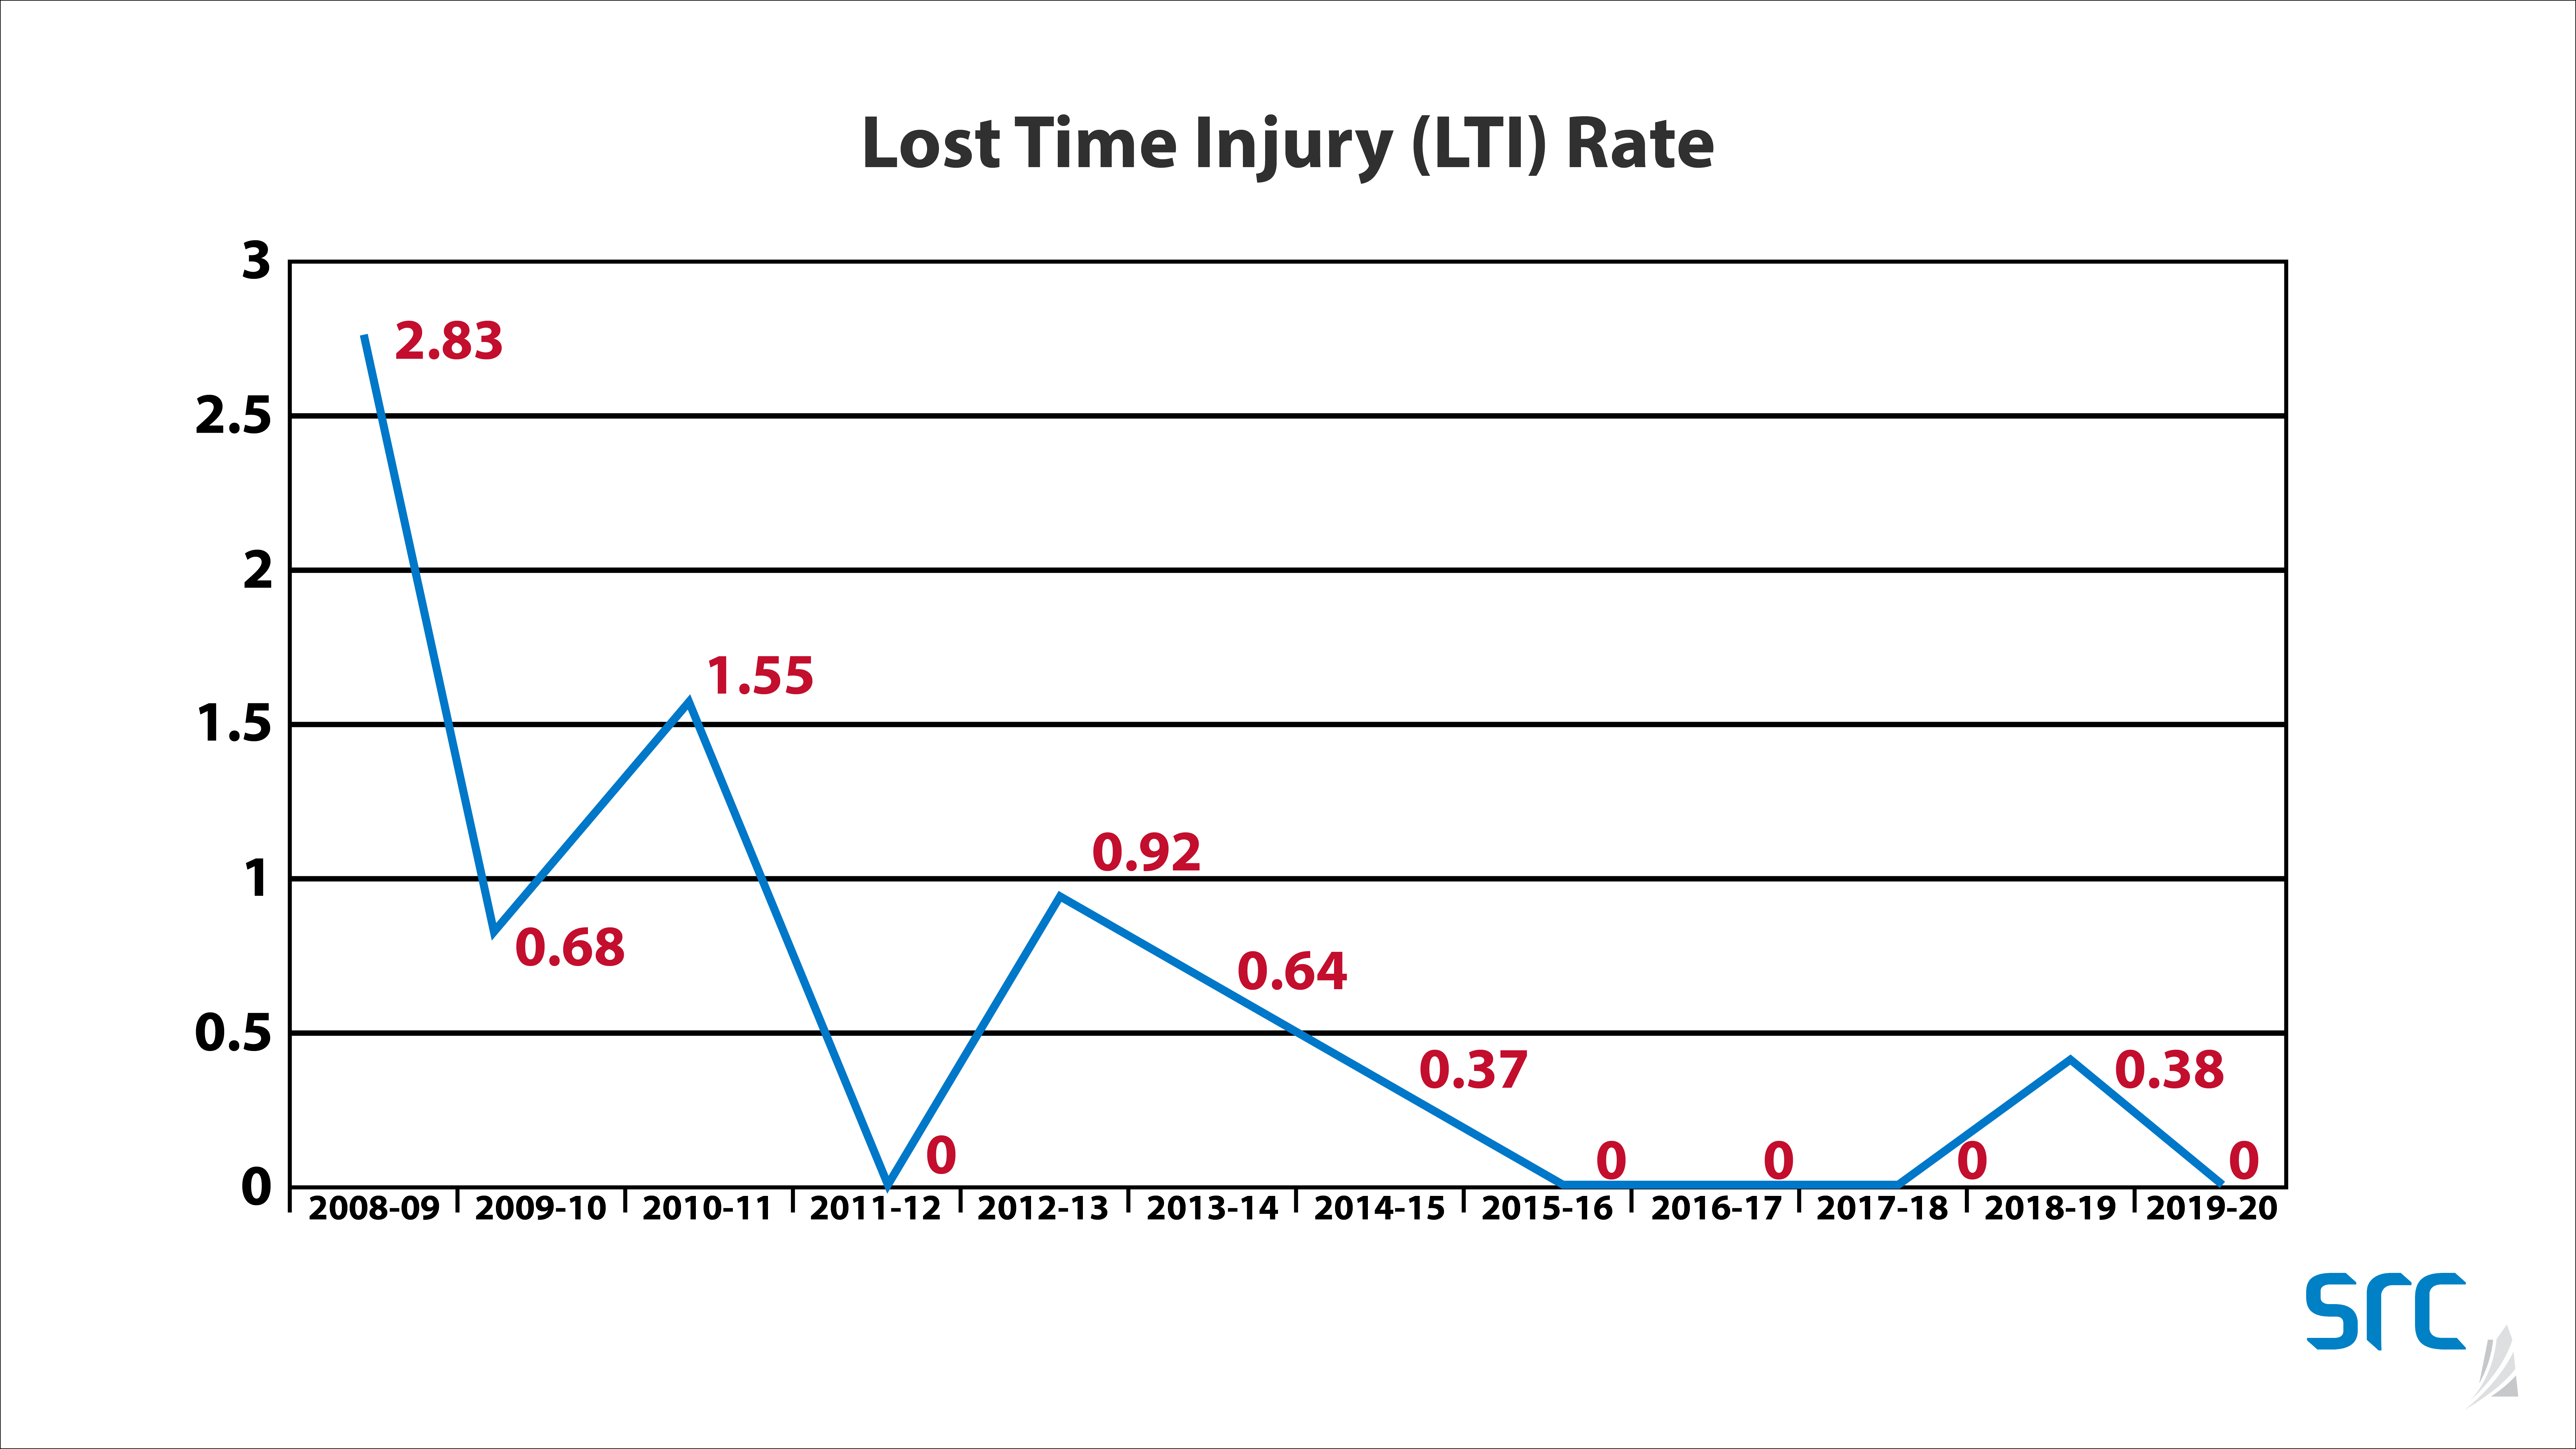 src lost-time incident graph trends downward